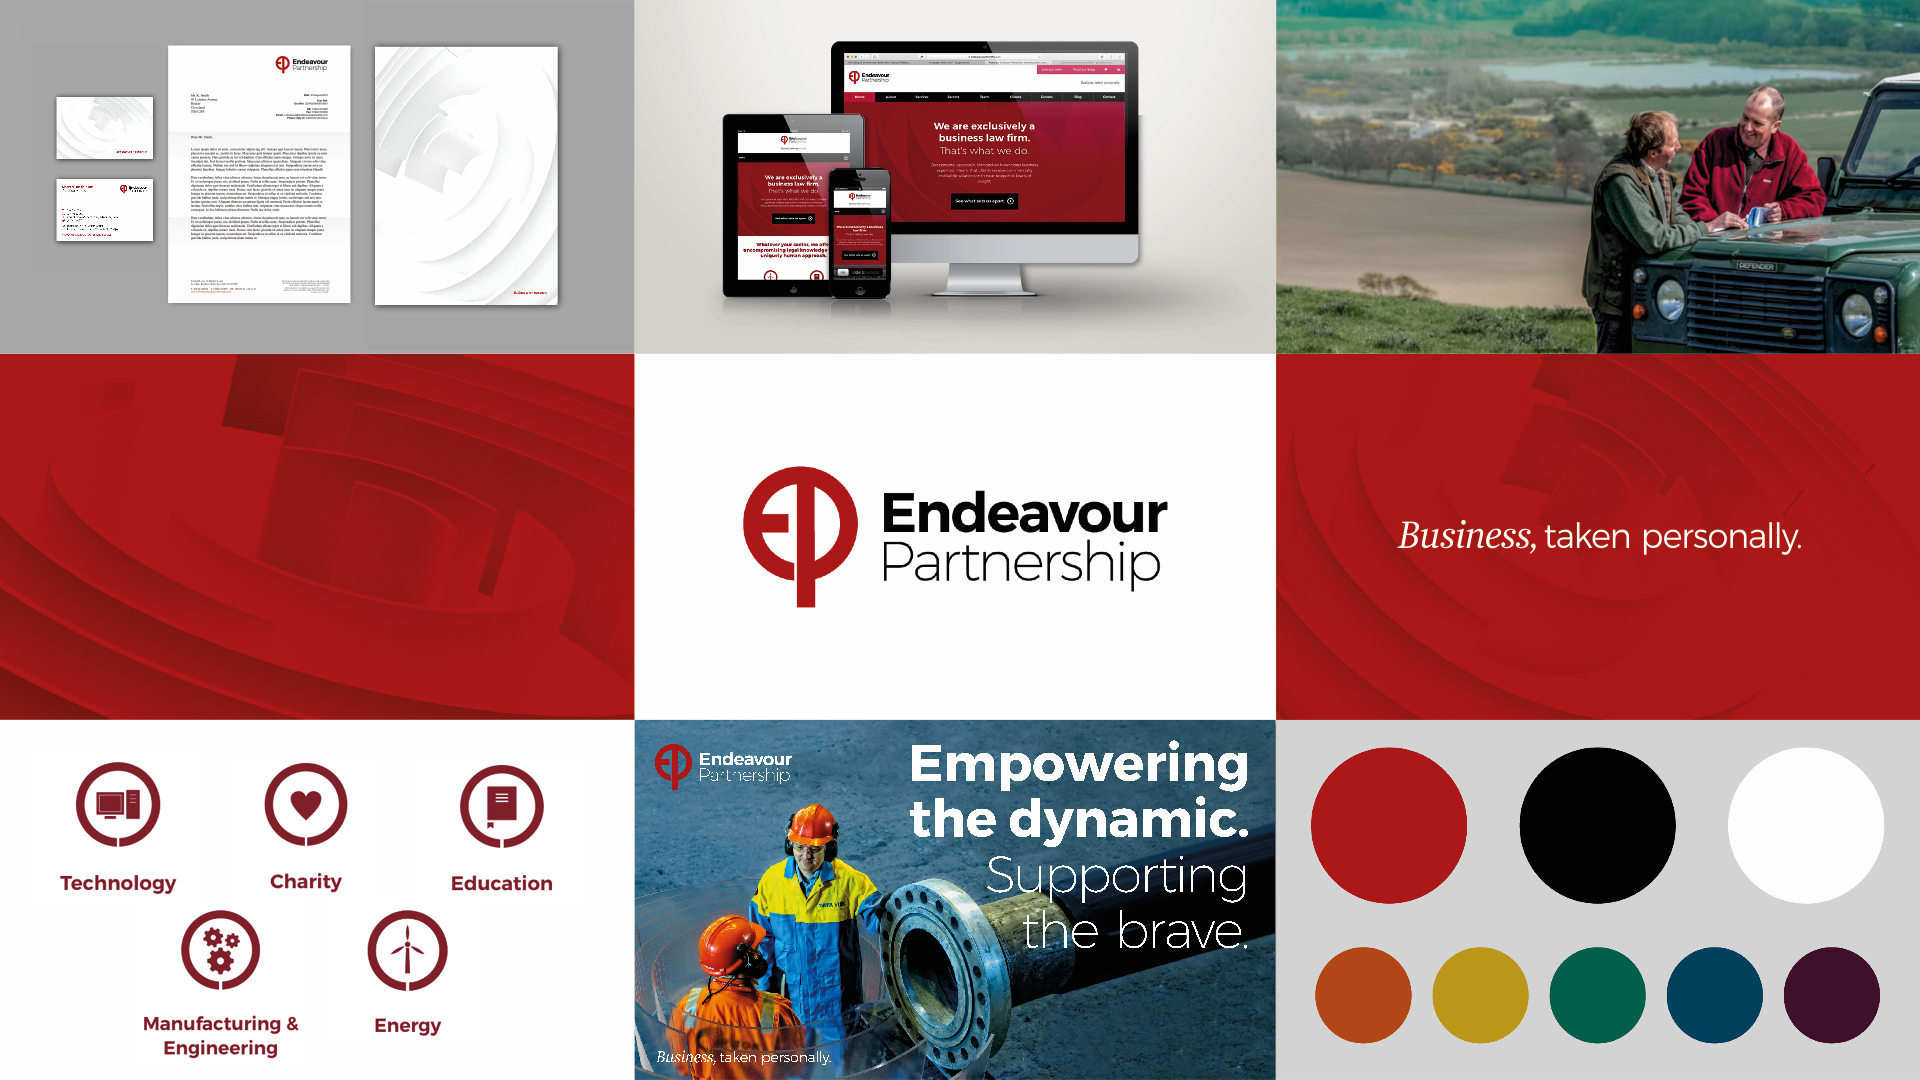 BetterBrandBuilder™ - CREATE Brand World - Endeavour Partnership